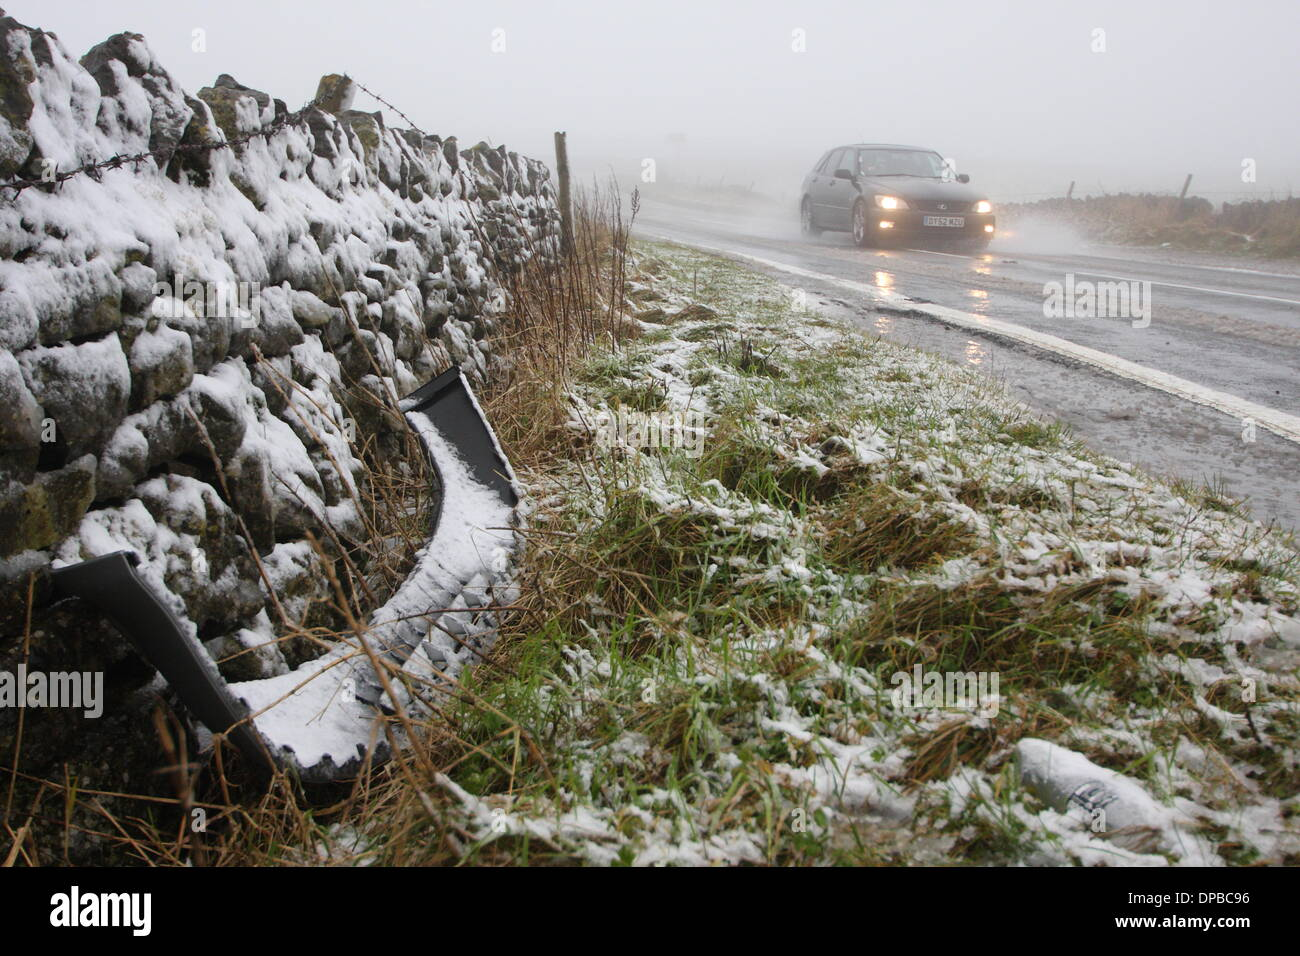 Peak District, Derbyshire, UK. 11th January 2014. 11 Jan 2014  Wintry conditions on the A6187 near Castleton made Stock Photo